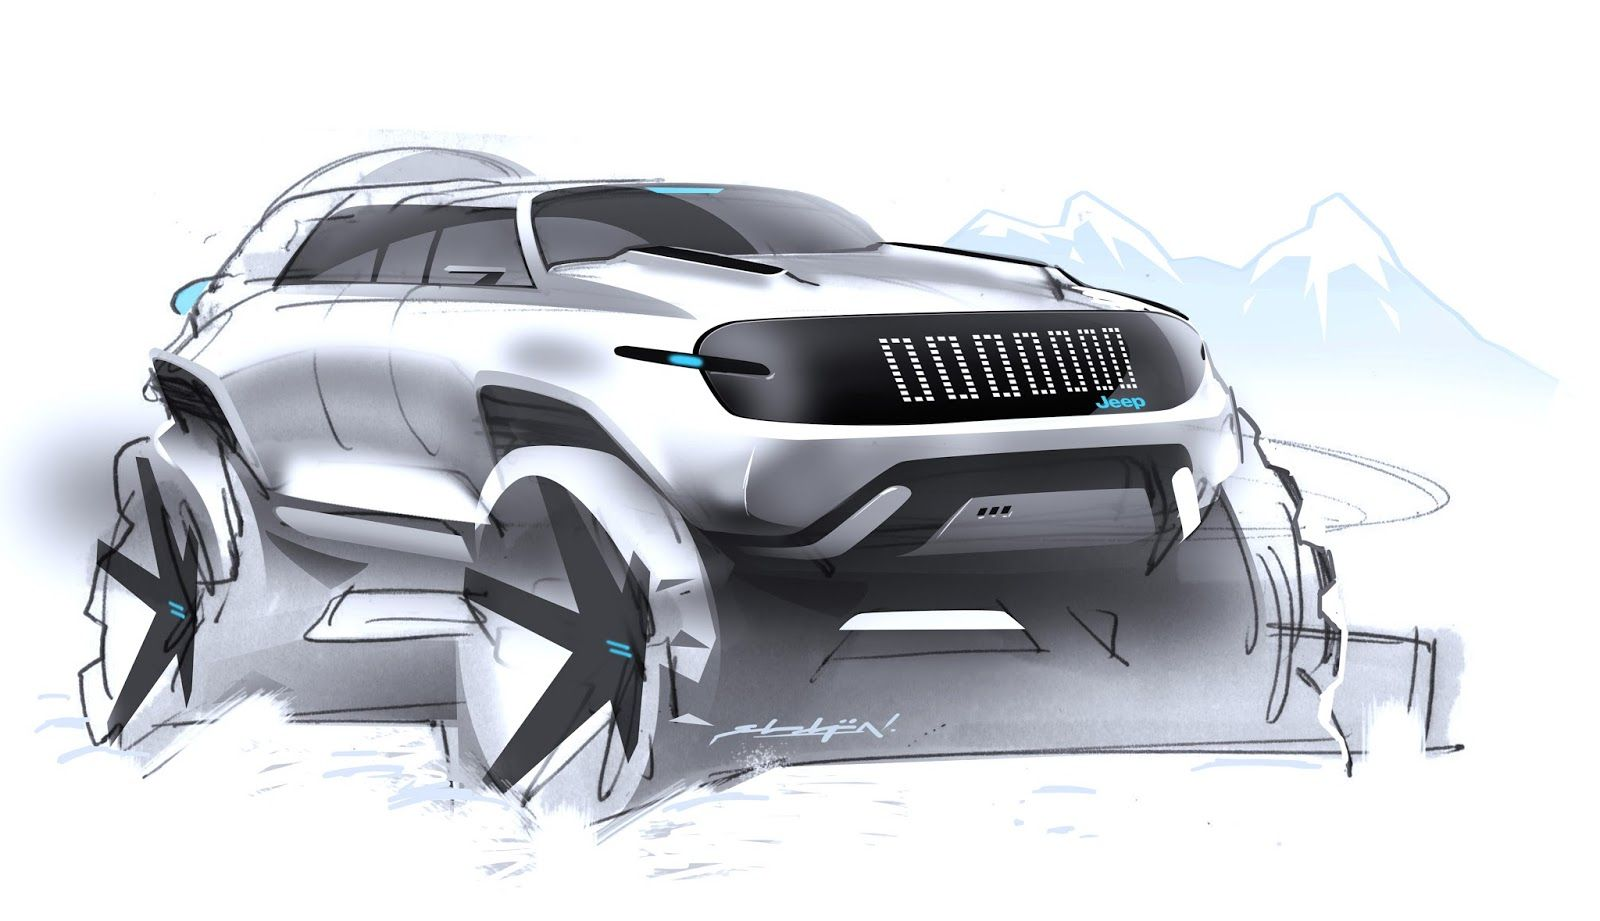 When i started this blog back in the days one of my first posts was about some random jeep sketches well i have to say that sketch